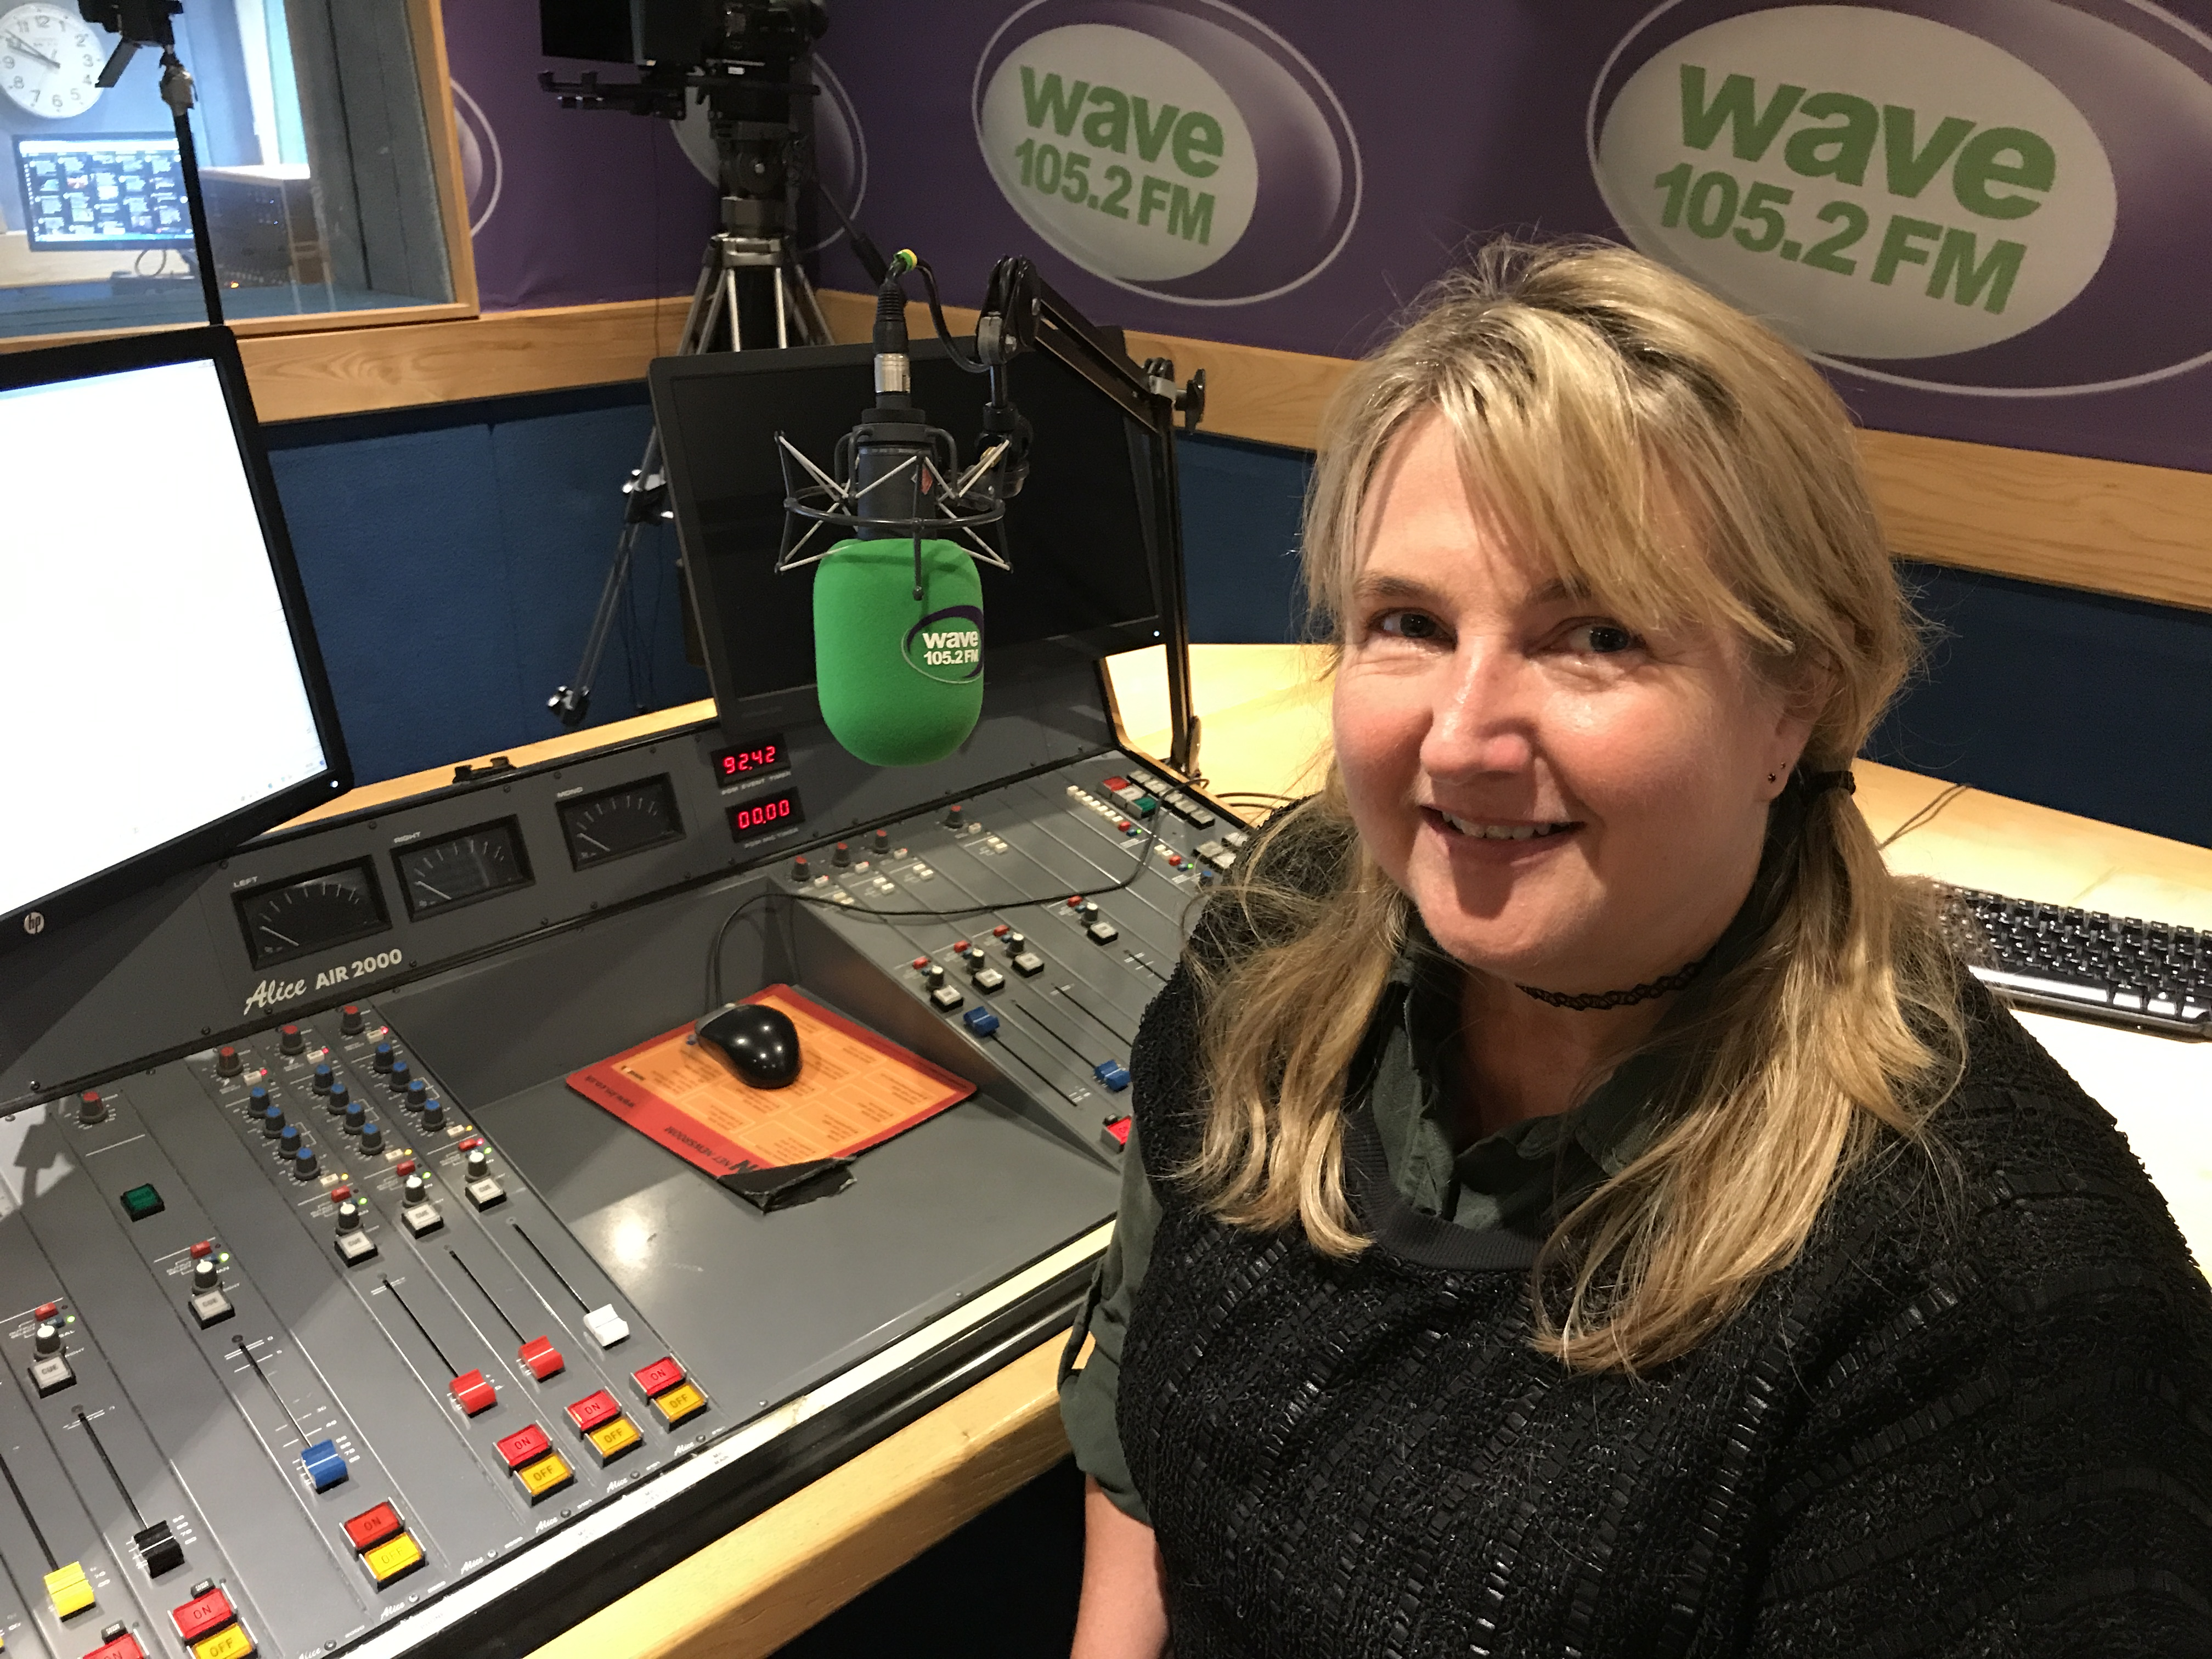 Fiona Bowden joins Wave 105 as creative services manager